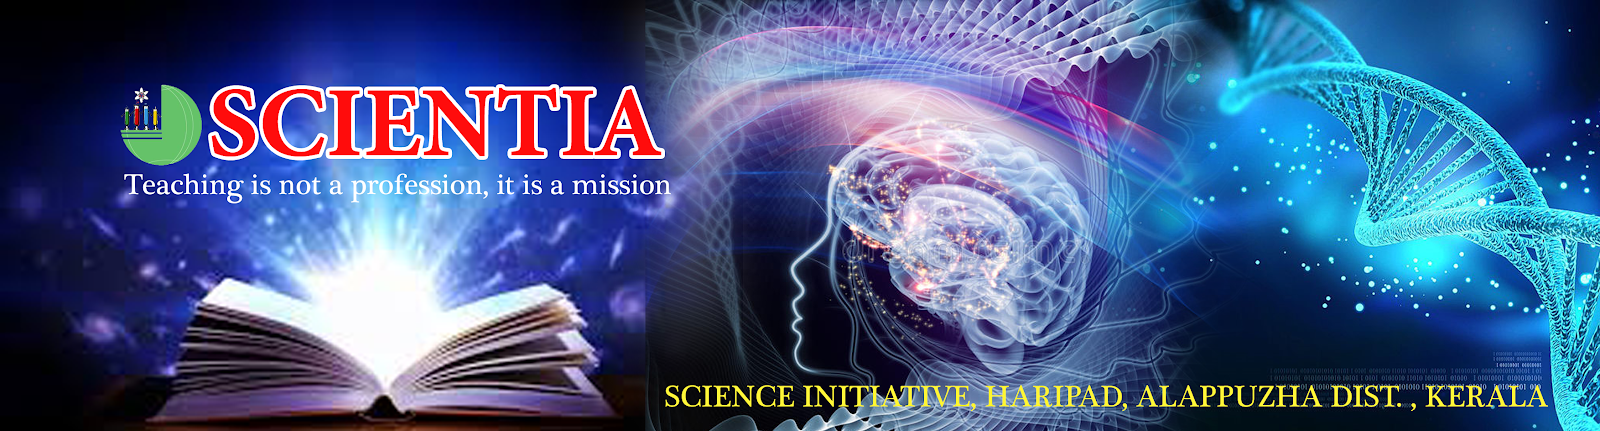 www.scientia.org.in